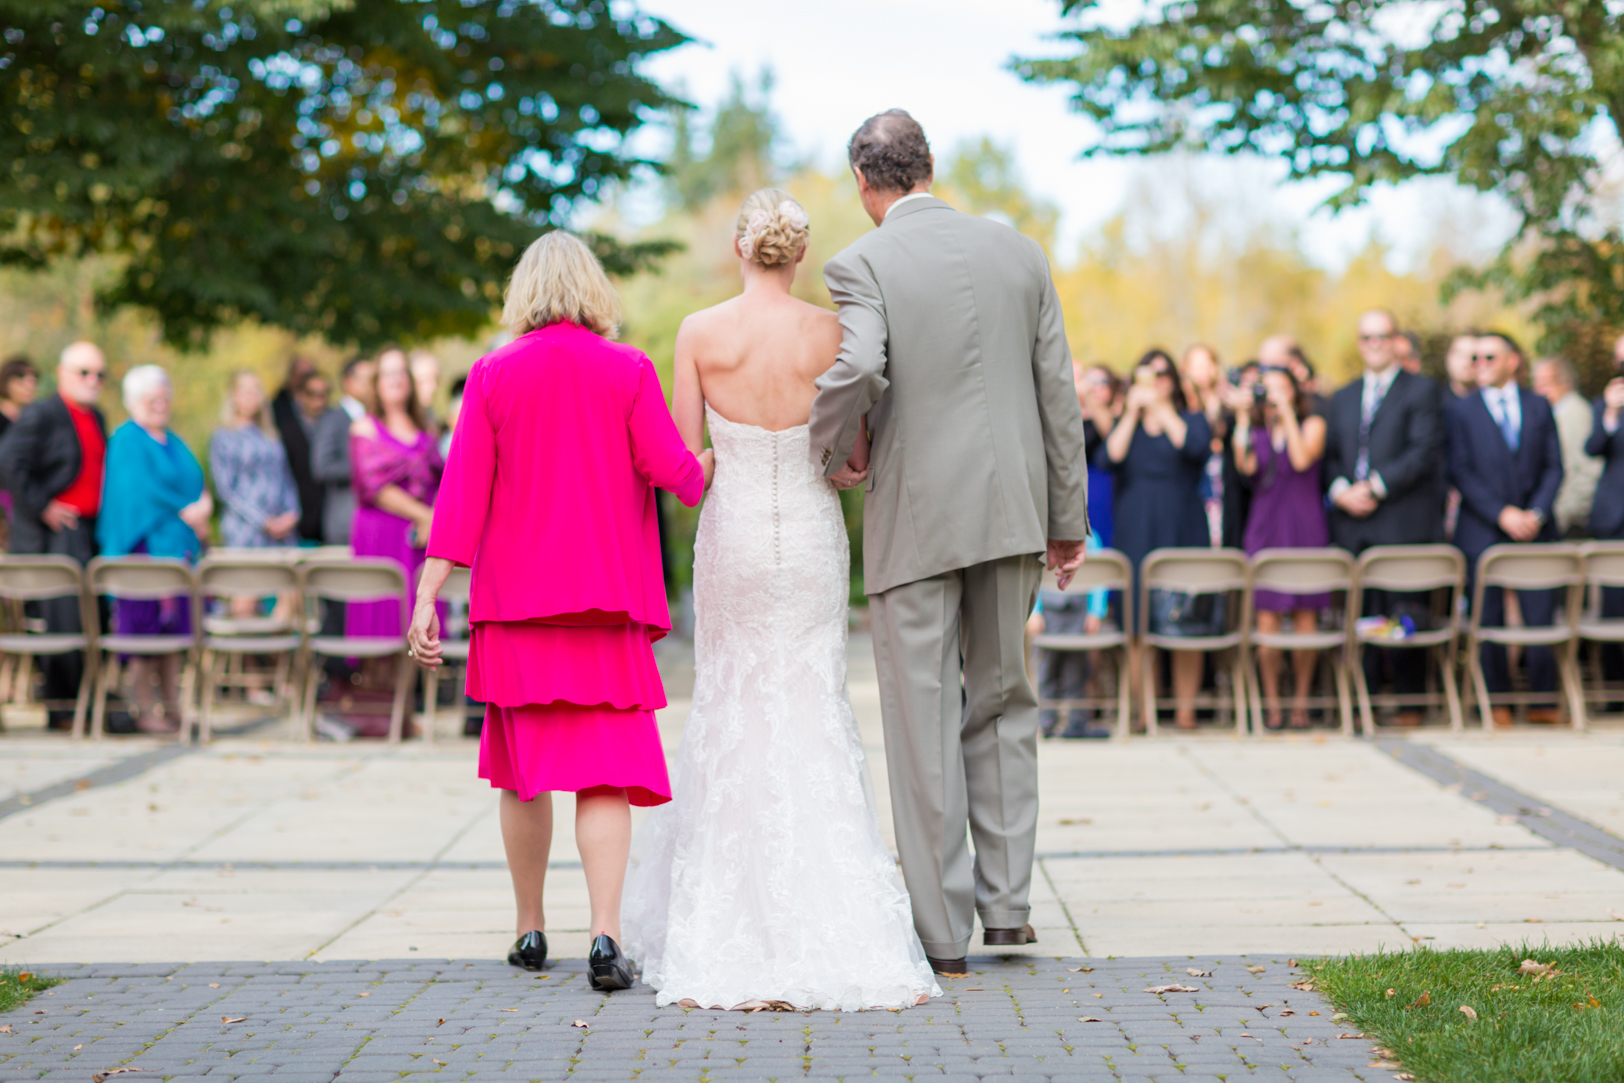 Wedding ceremony pictures at University of Alberta Devonian Botanic Garden